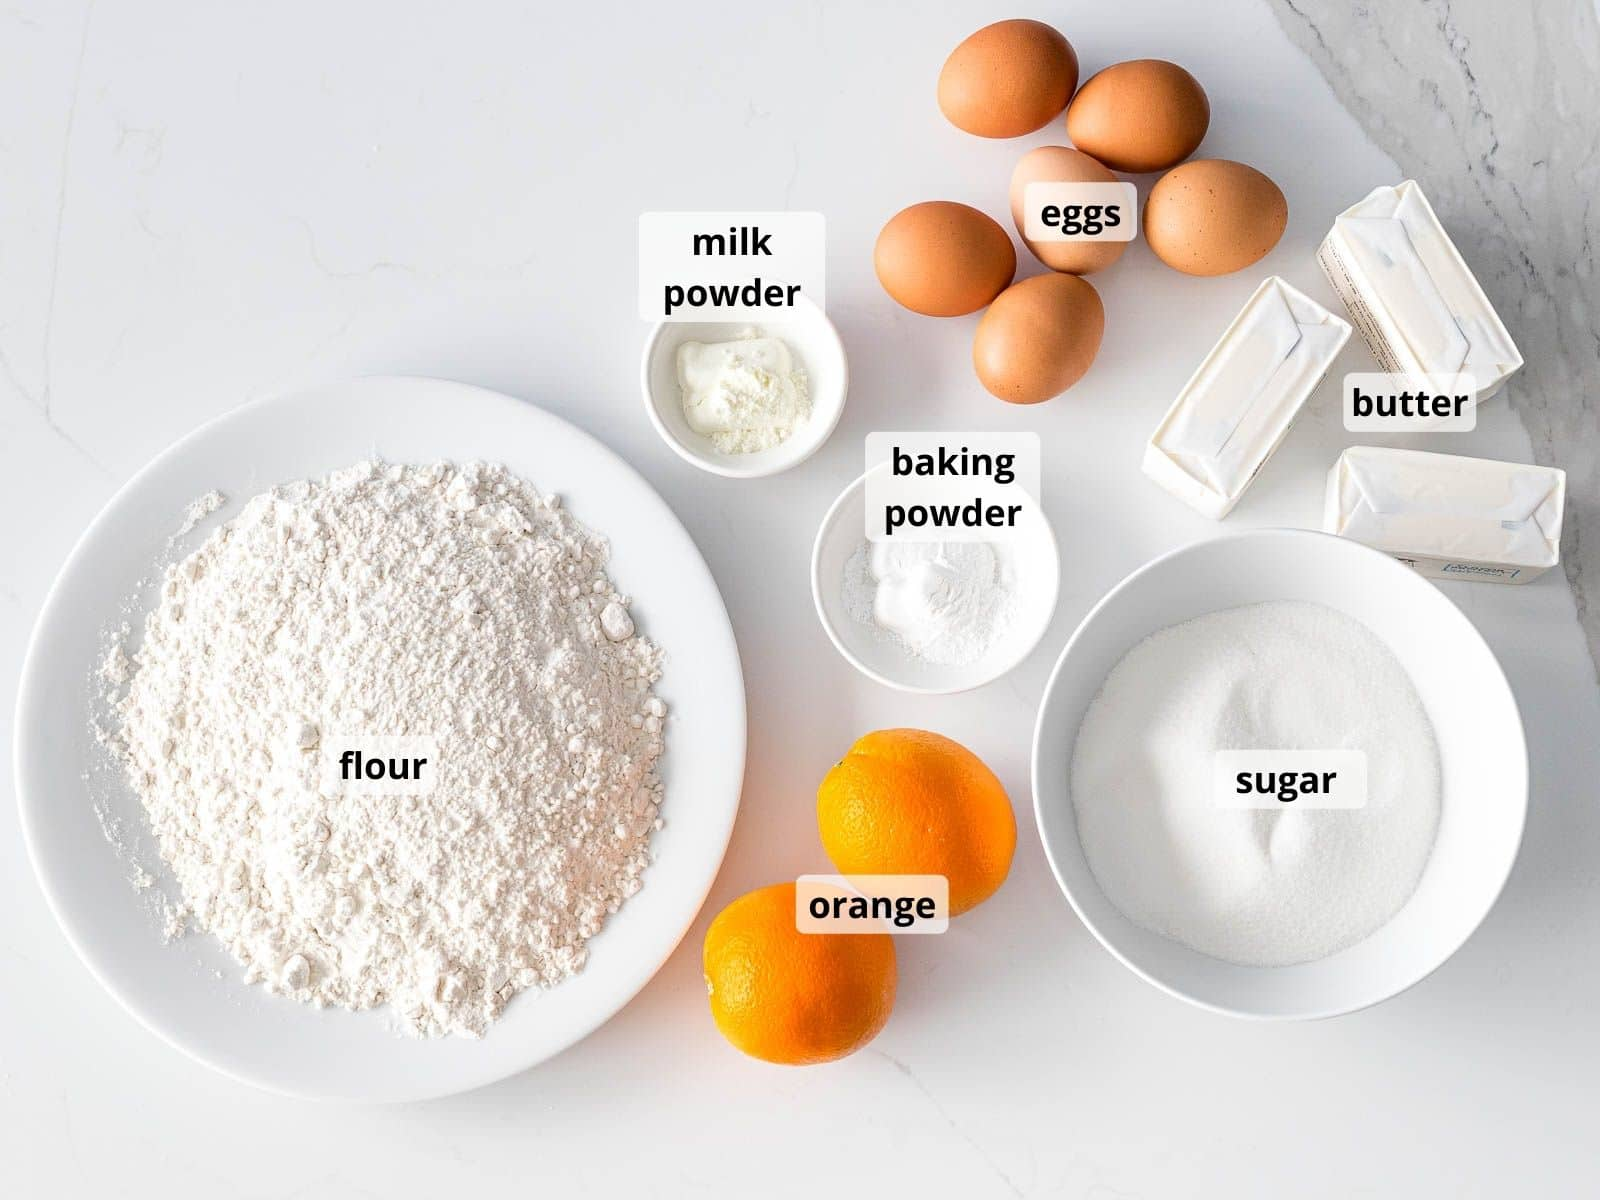 labeled ingredients for orange pound cake in small white bowls